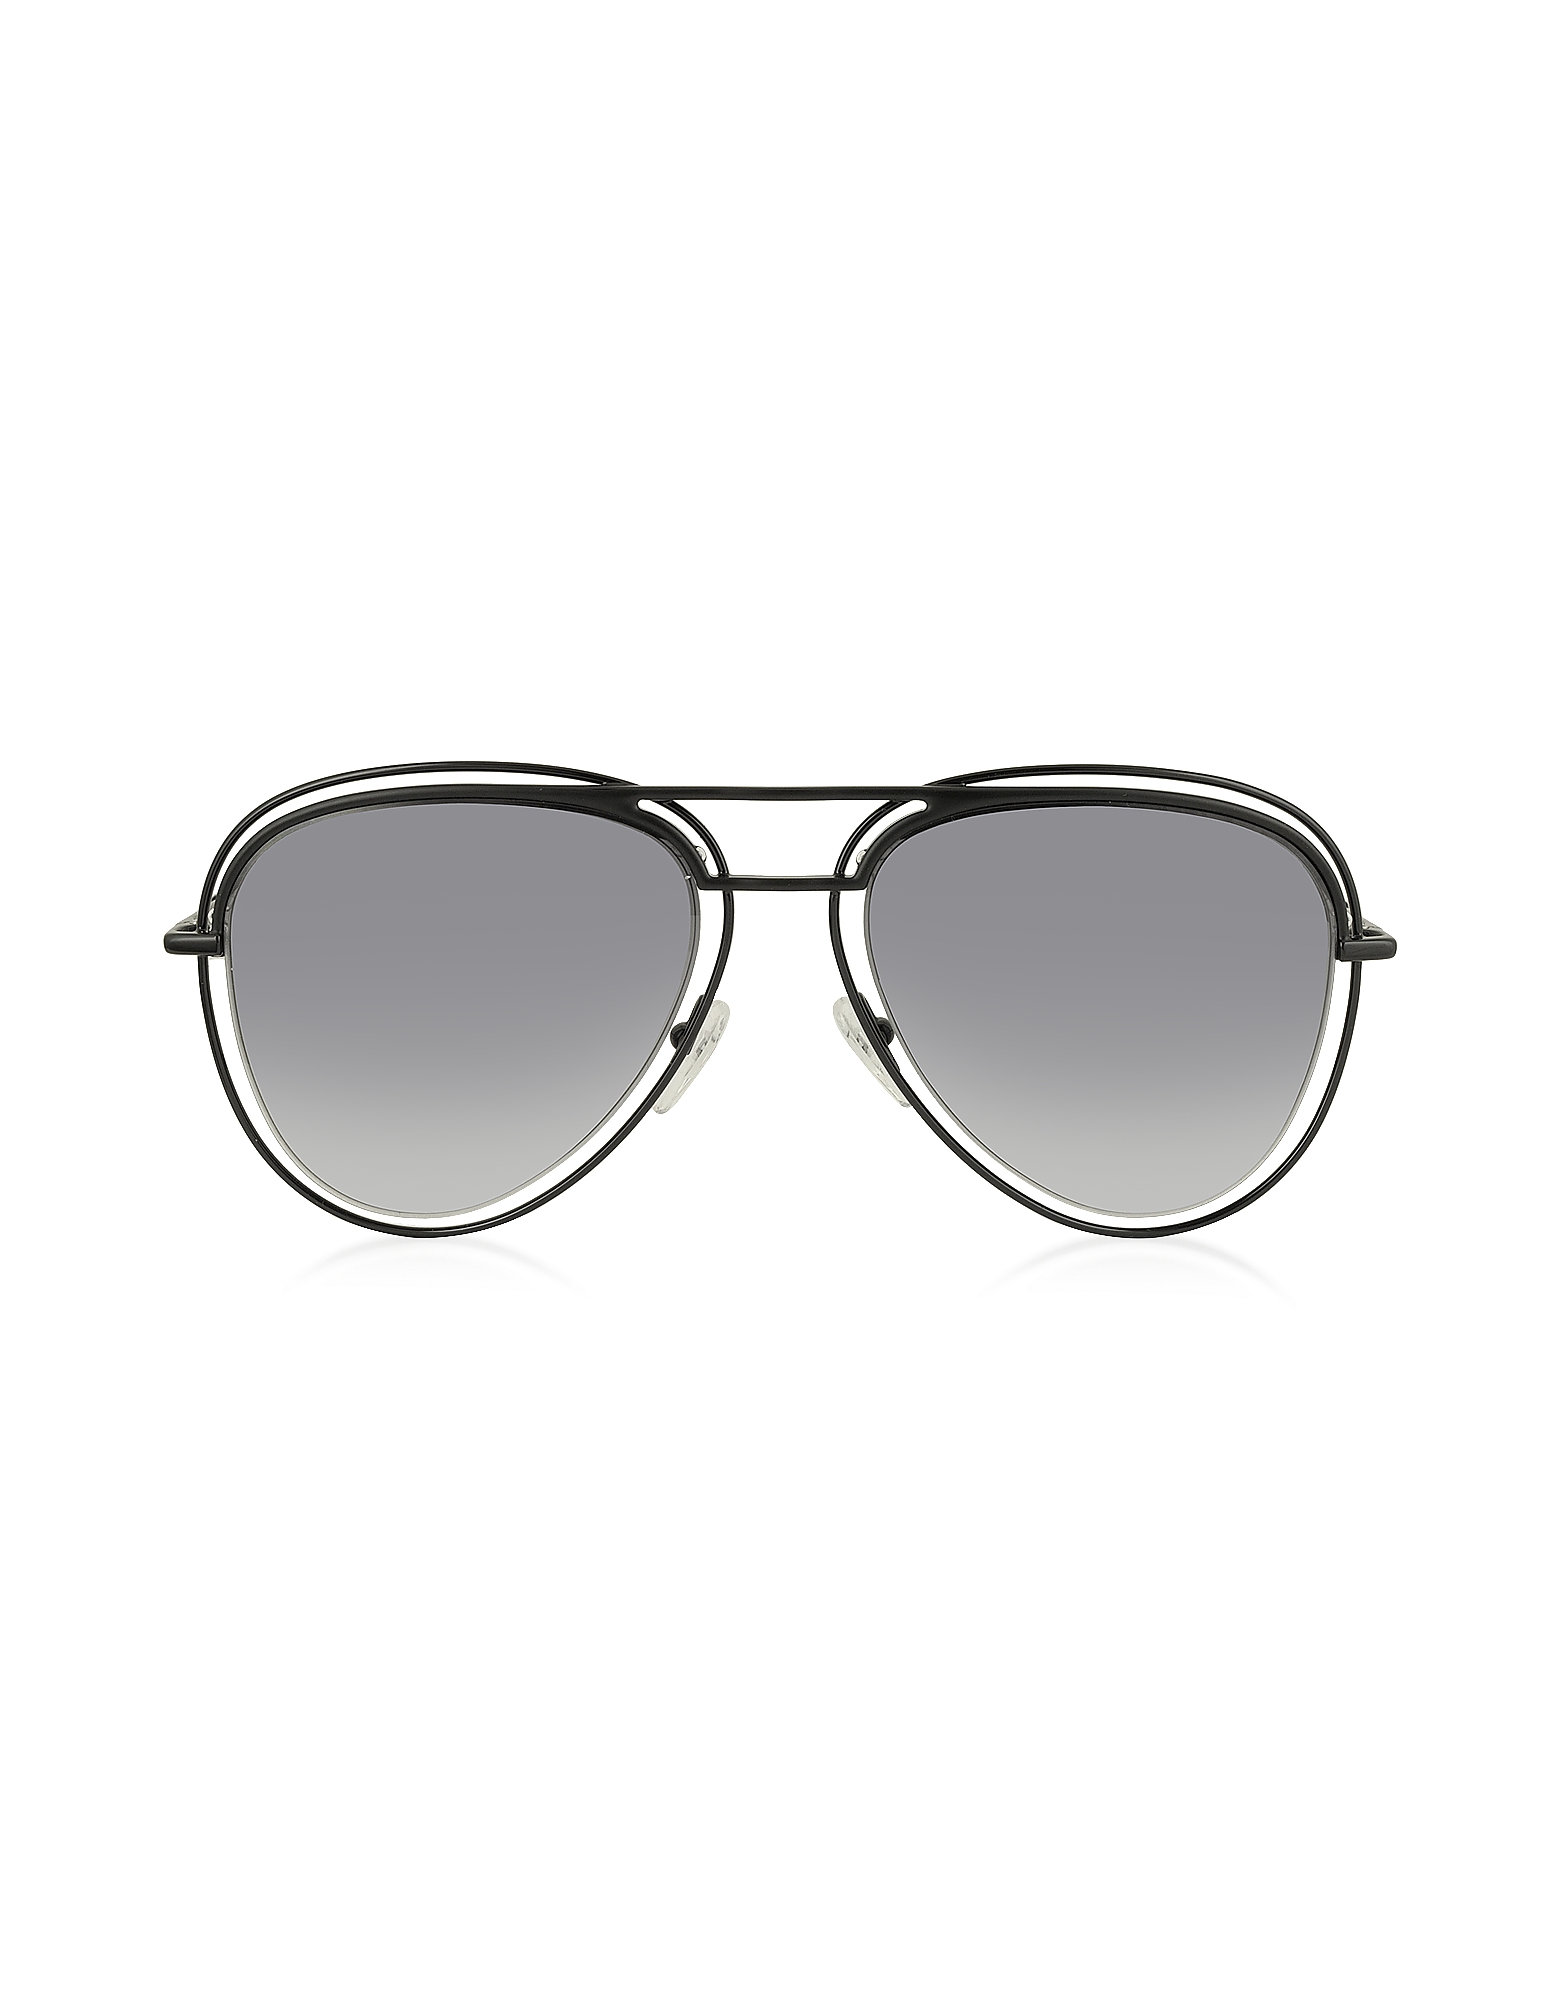 Marc Jacobs Sunglasses, MARC 7/S Metal & Acetate Aviator Women's Sunglasses